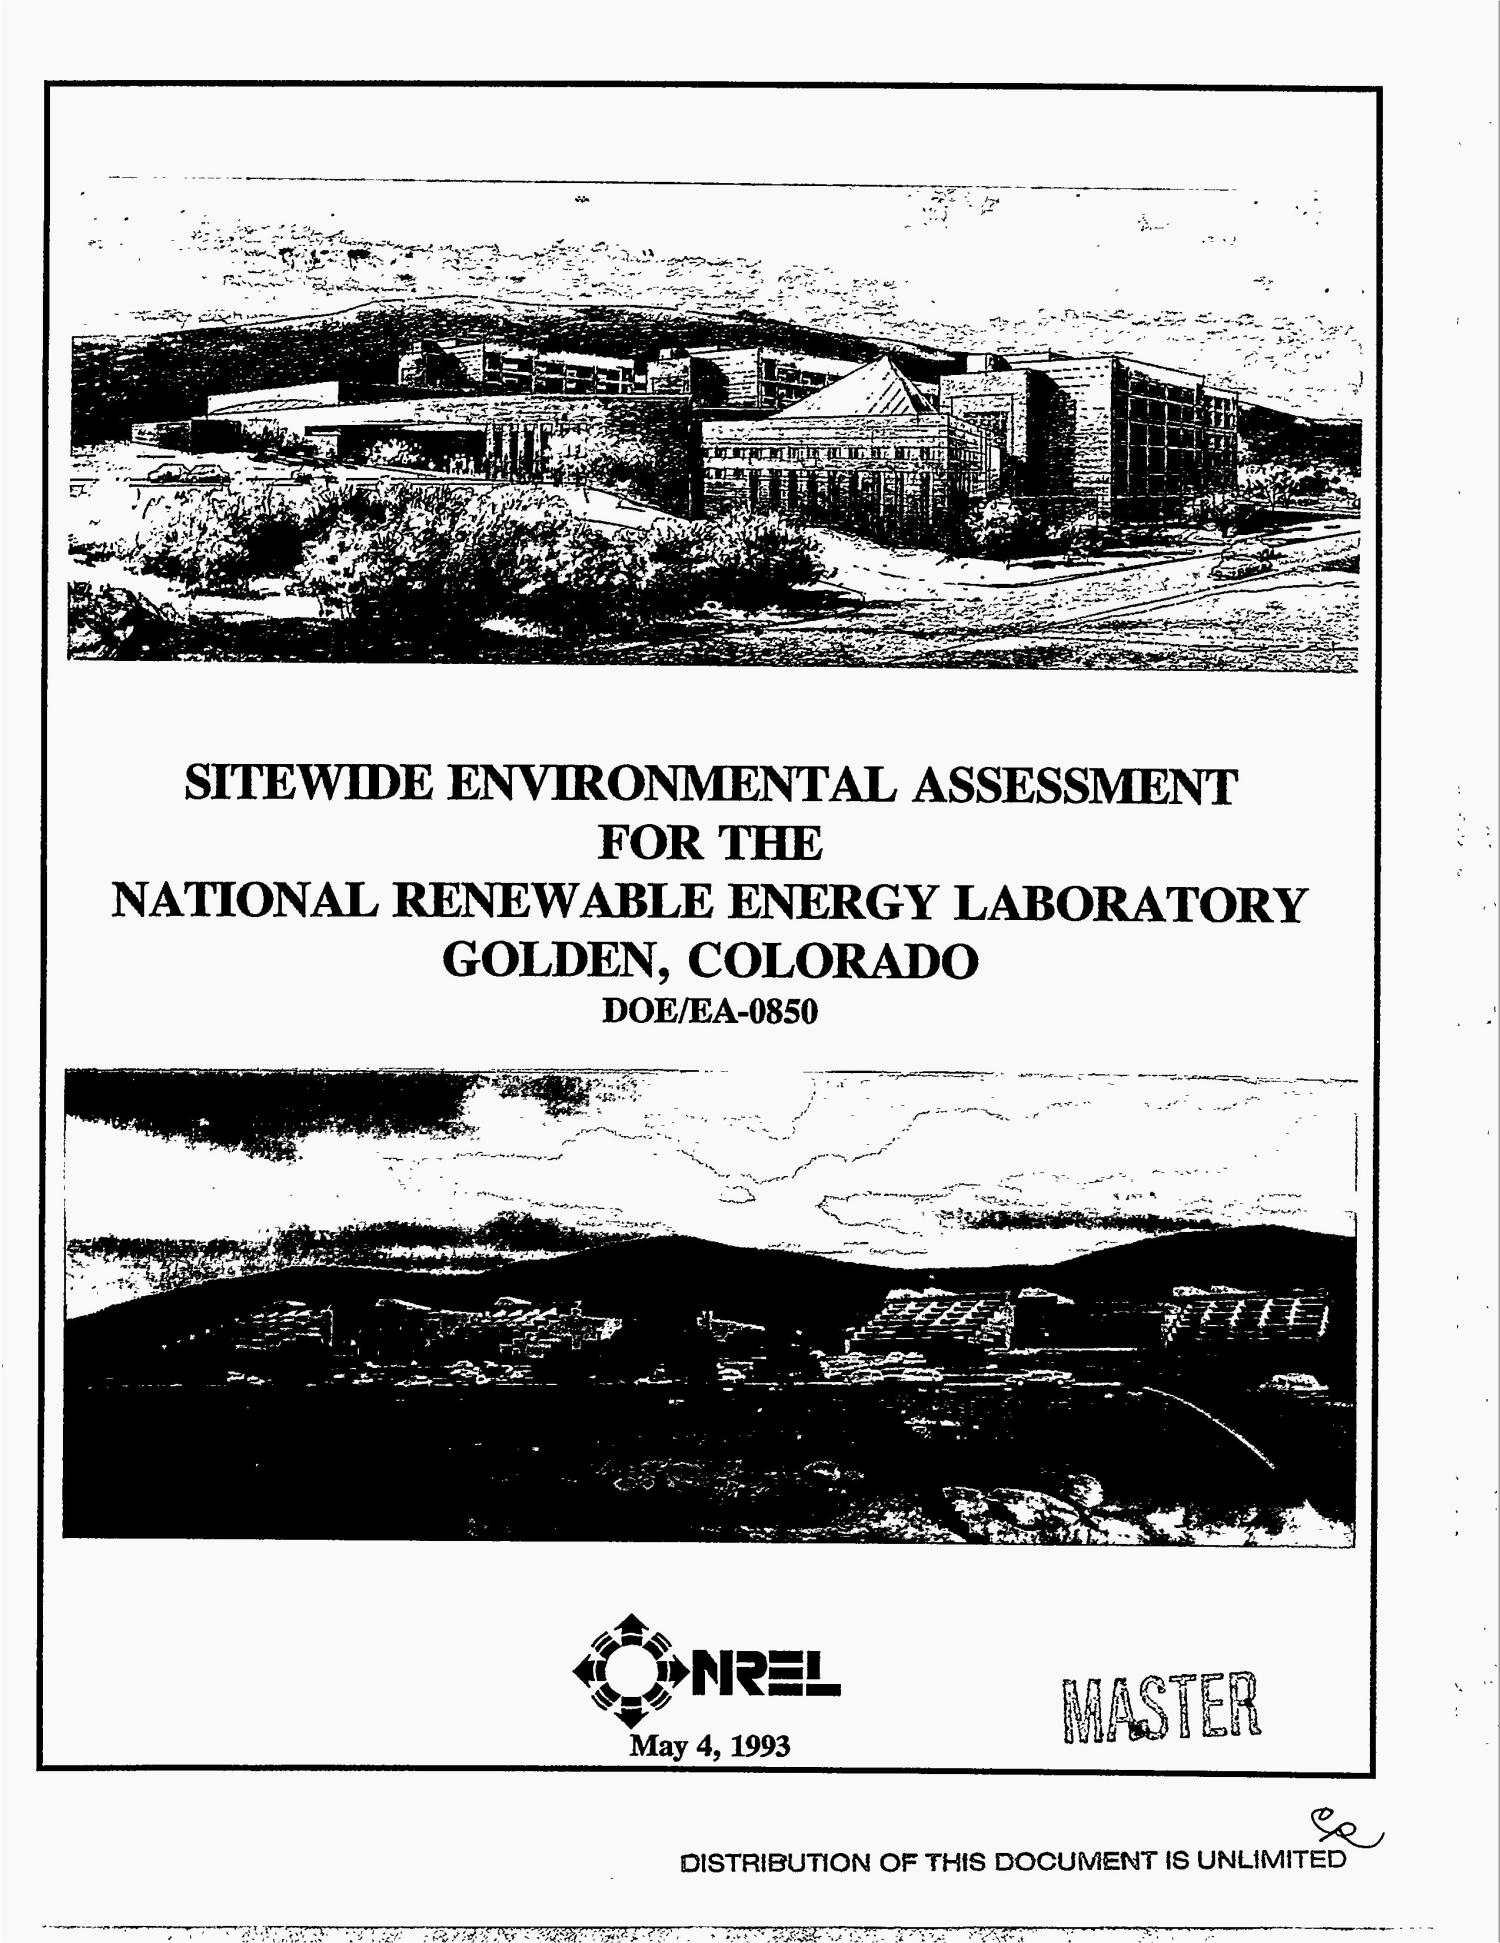 Sitewide Environmental Assessment for the National Renewable Energy Laboratory, Golden, Colorado                                                                                                      [Sequence #]: 1 of 173